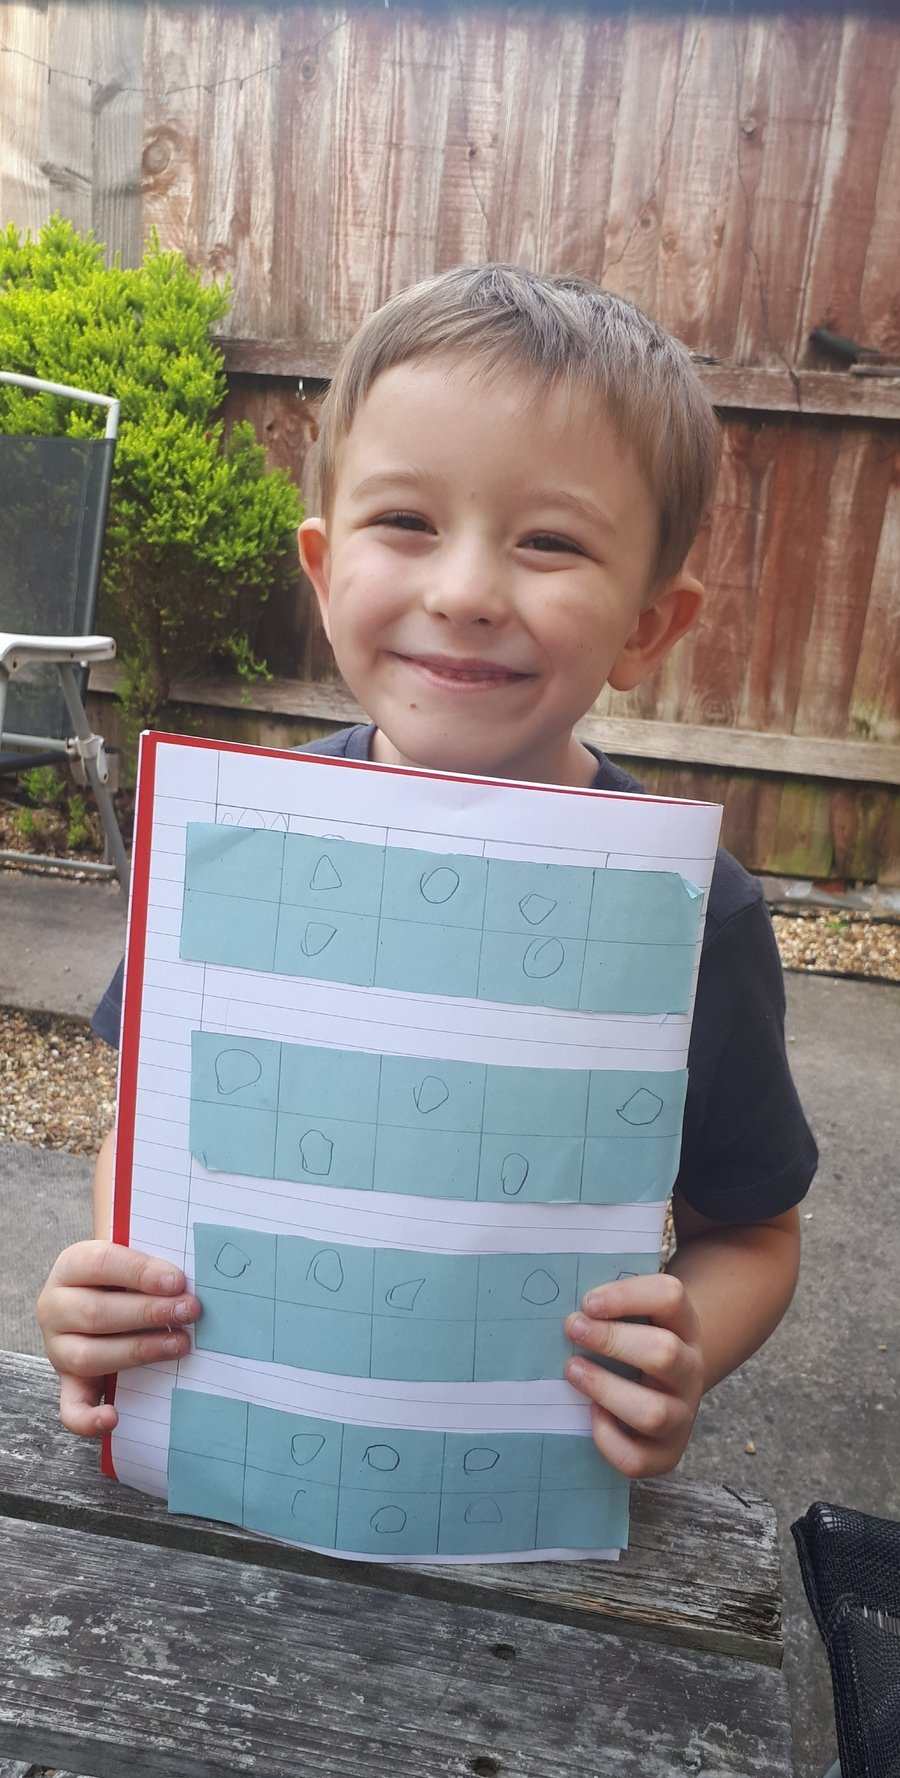 Reece had a go at showing all the different ways 5 can be represented, well done!